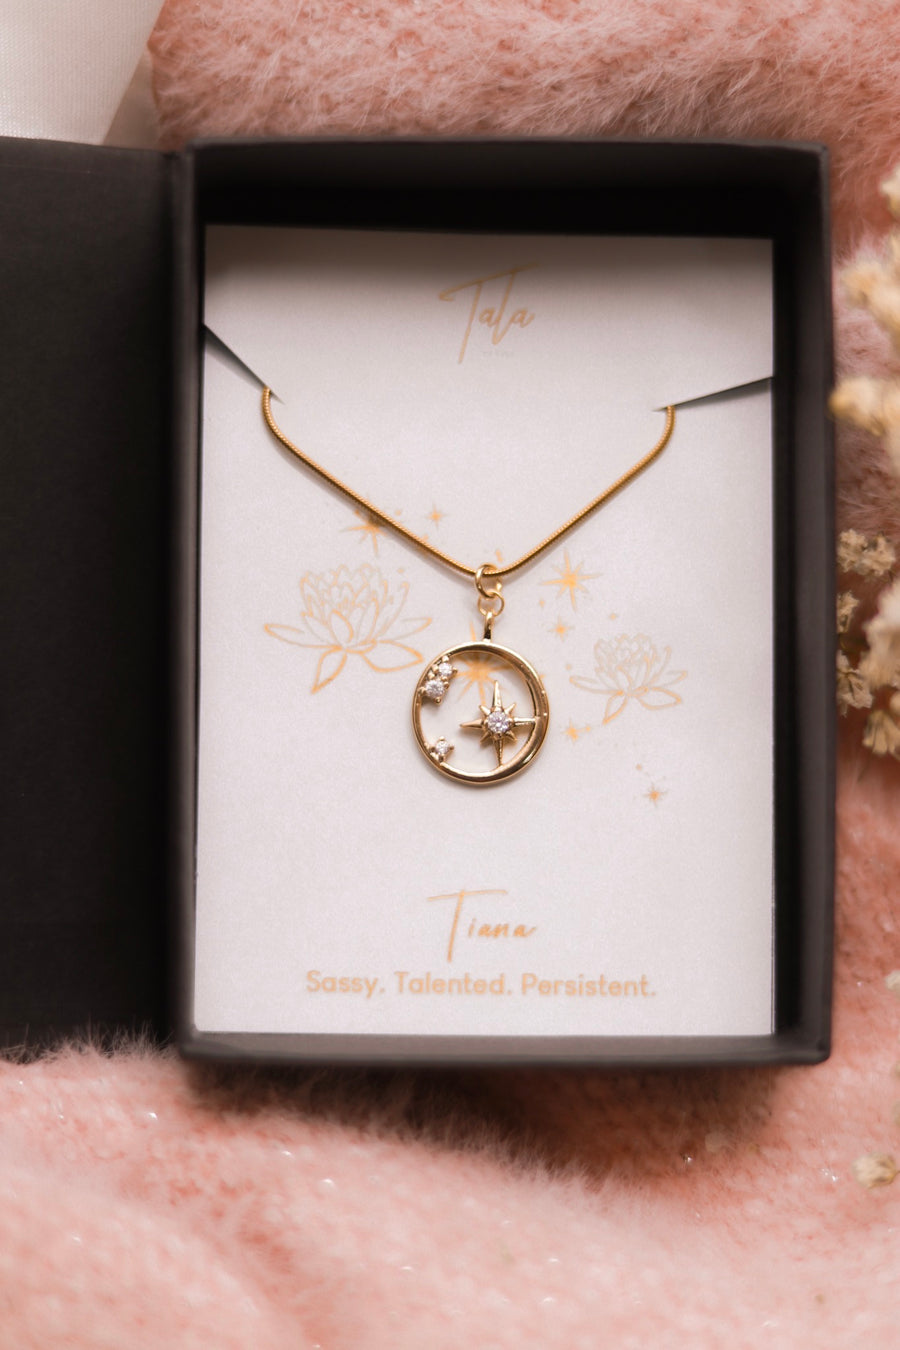 Tiana Crystal Evangeline Necklace